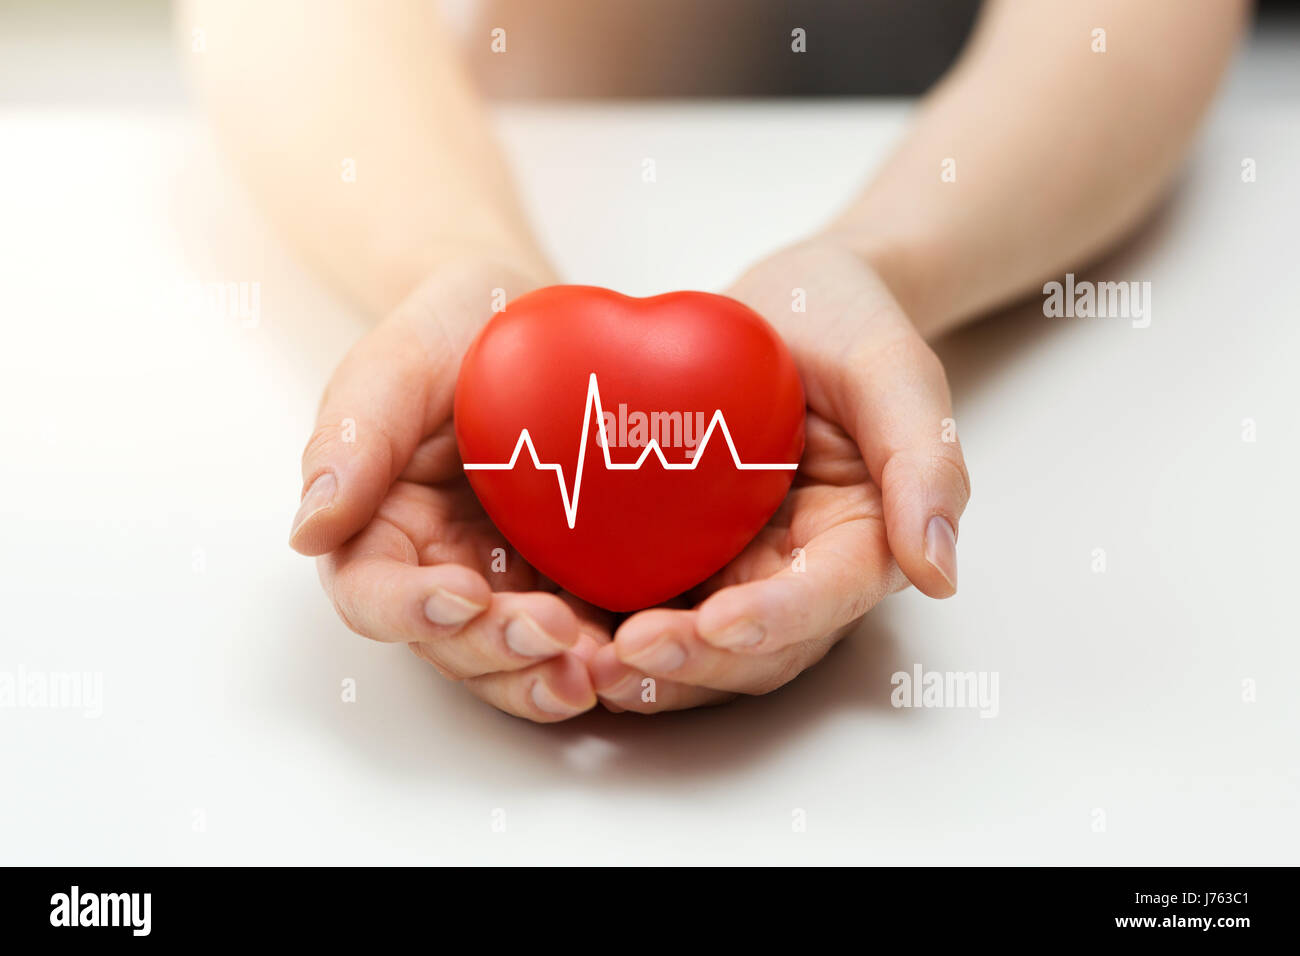 cardiology or health insurance concept - red heart in hands - Stock Image